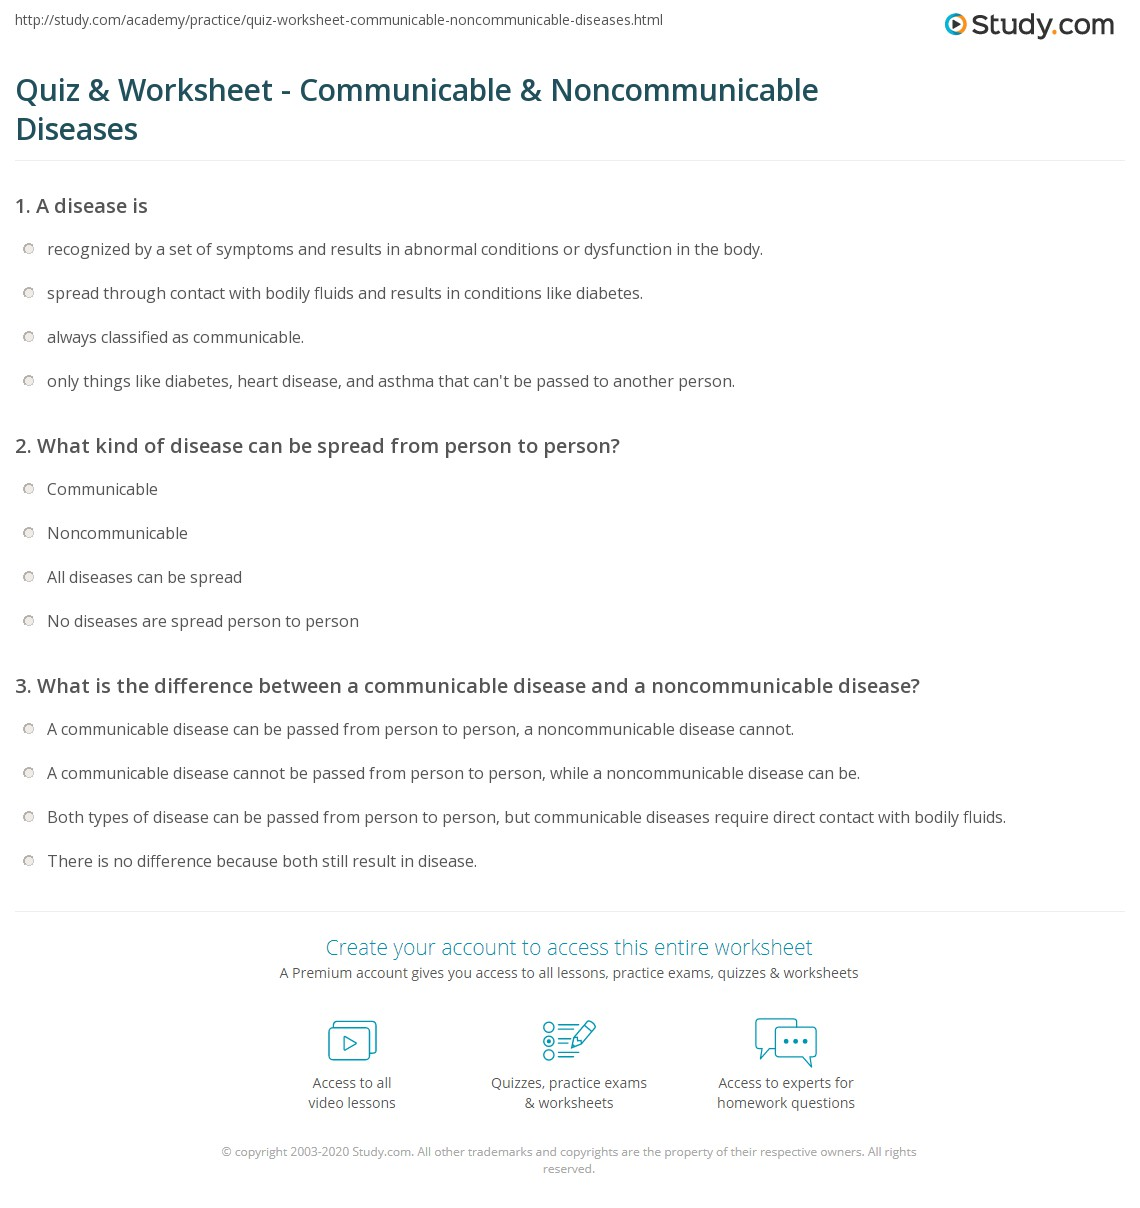 Print Communicable & Noncommunicable Diseases: Definition & Examples  Worksheet